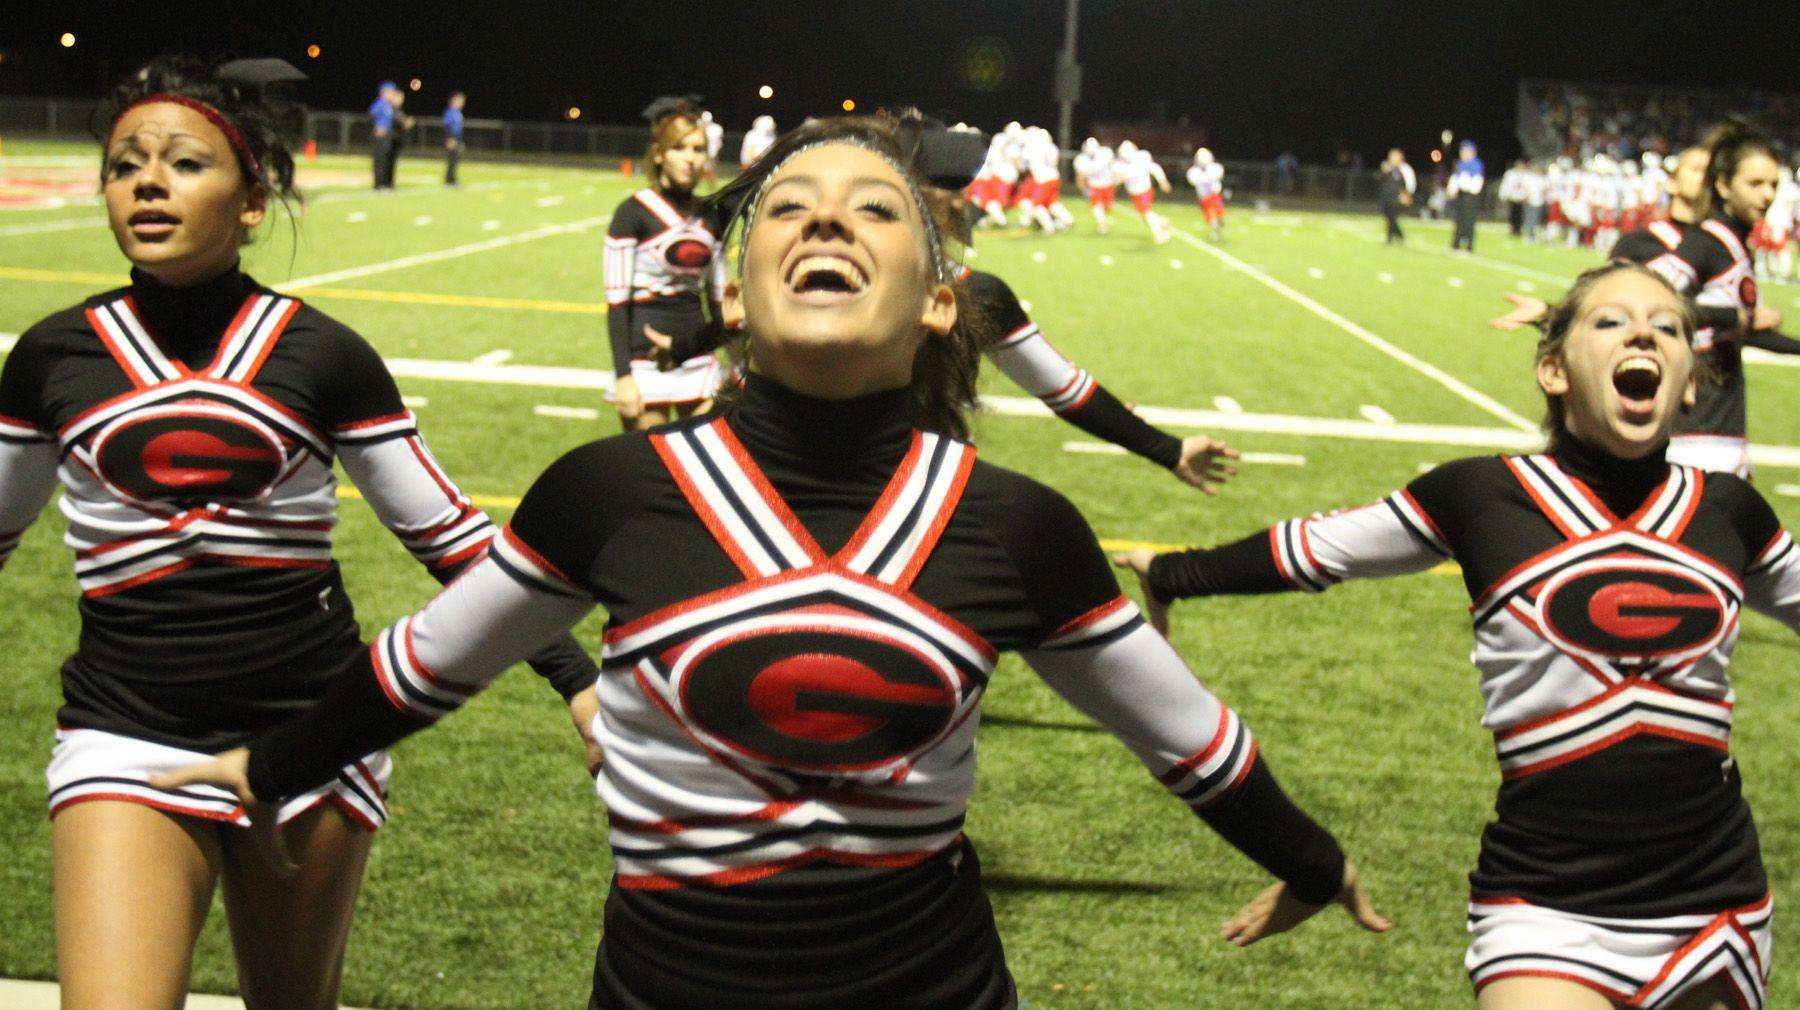 Week 9 - Images from the Lakes at Grant football game Friday, October 22.